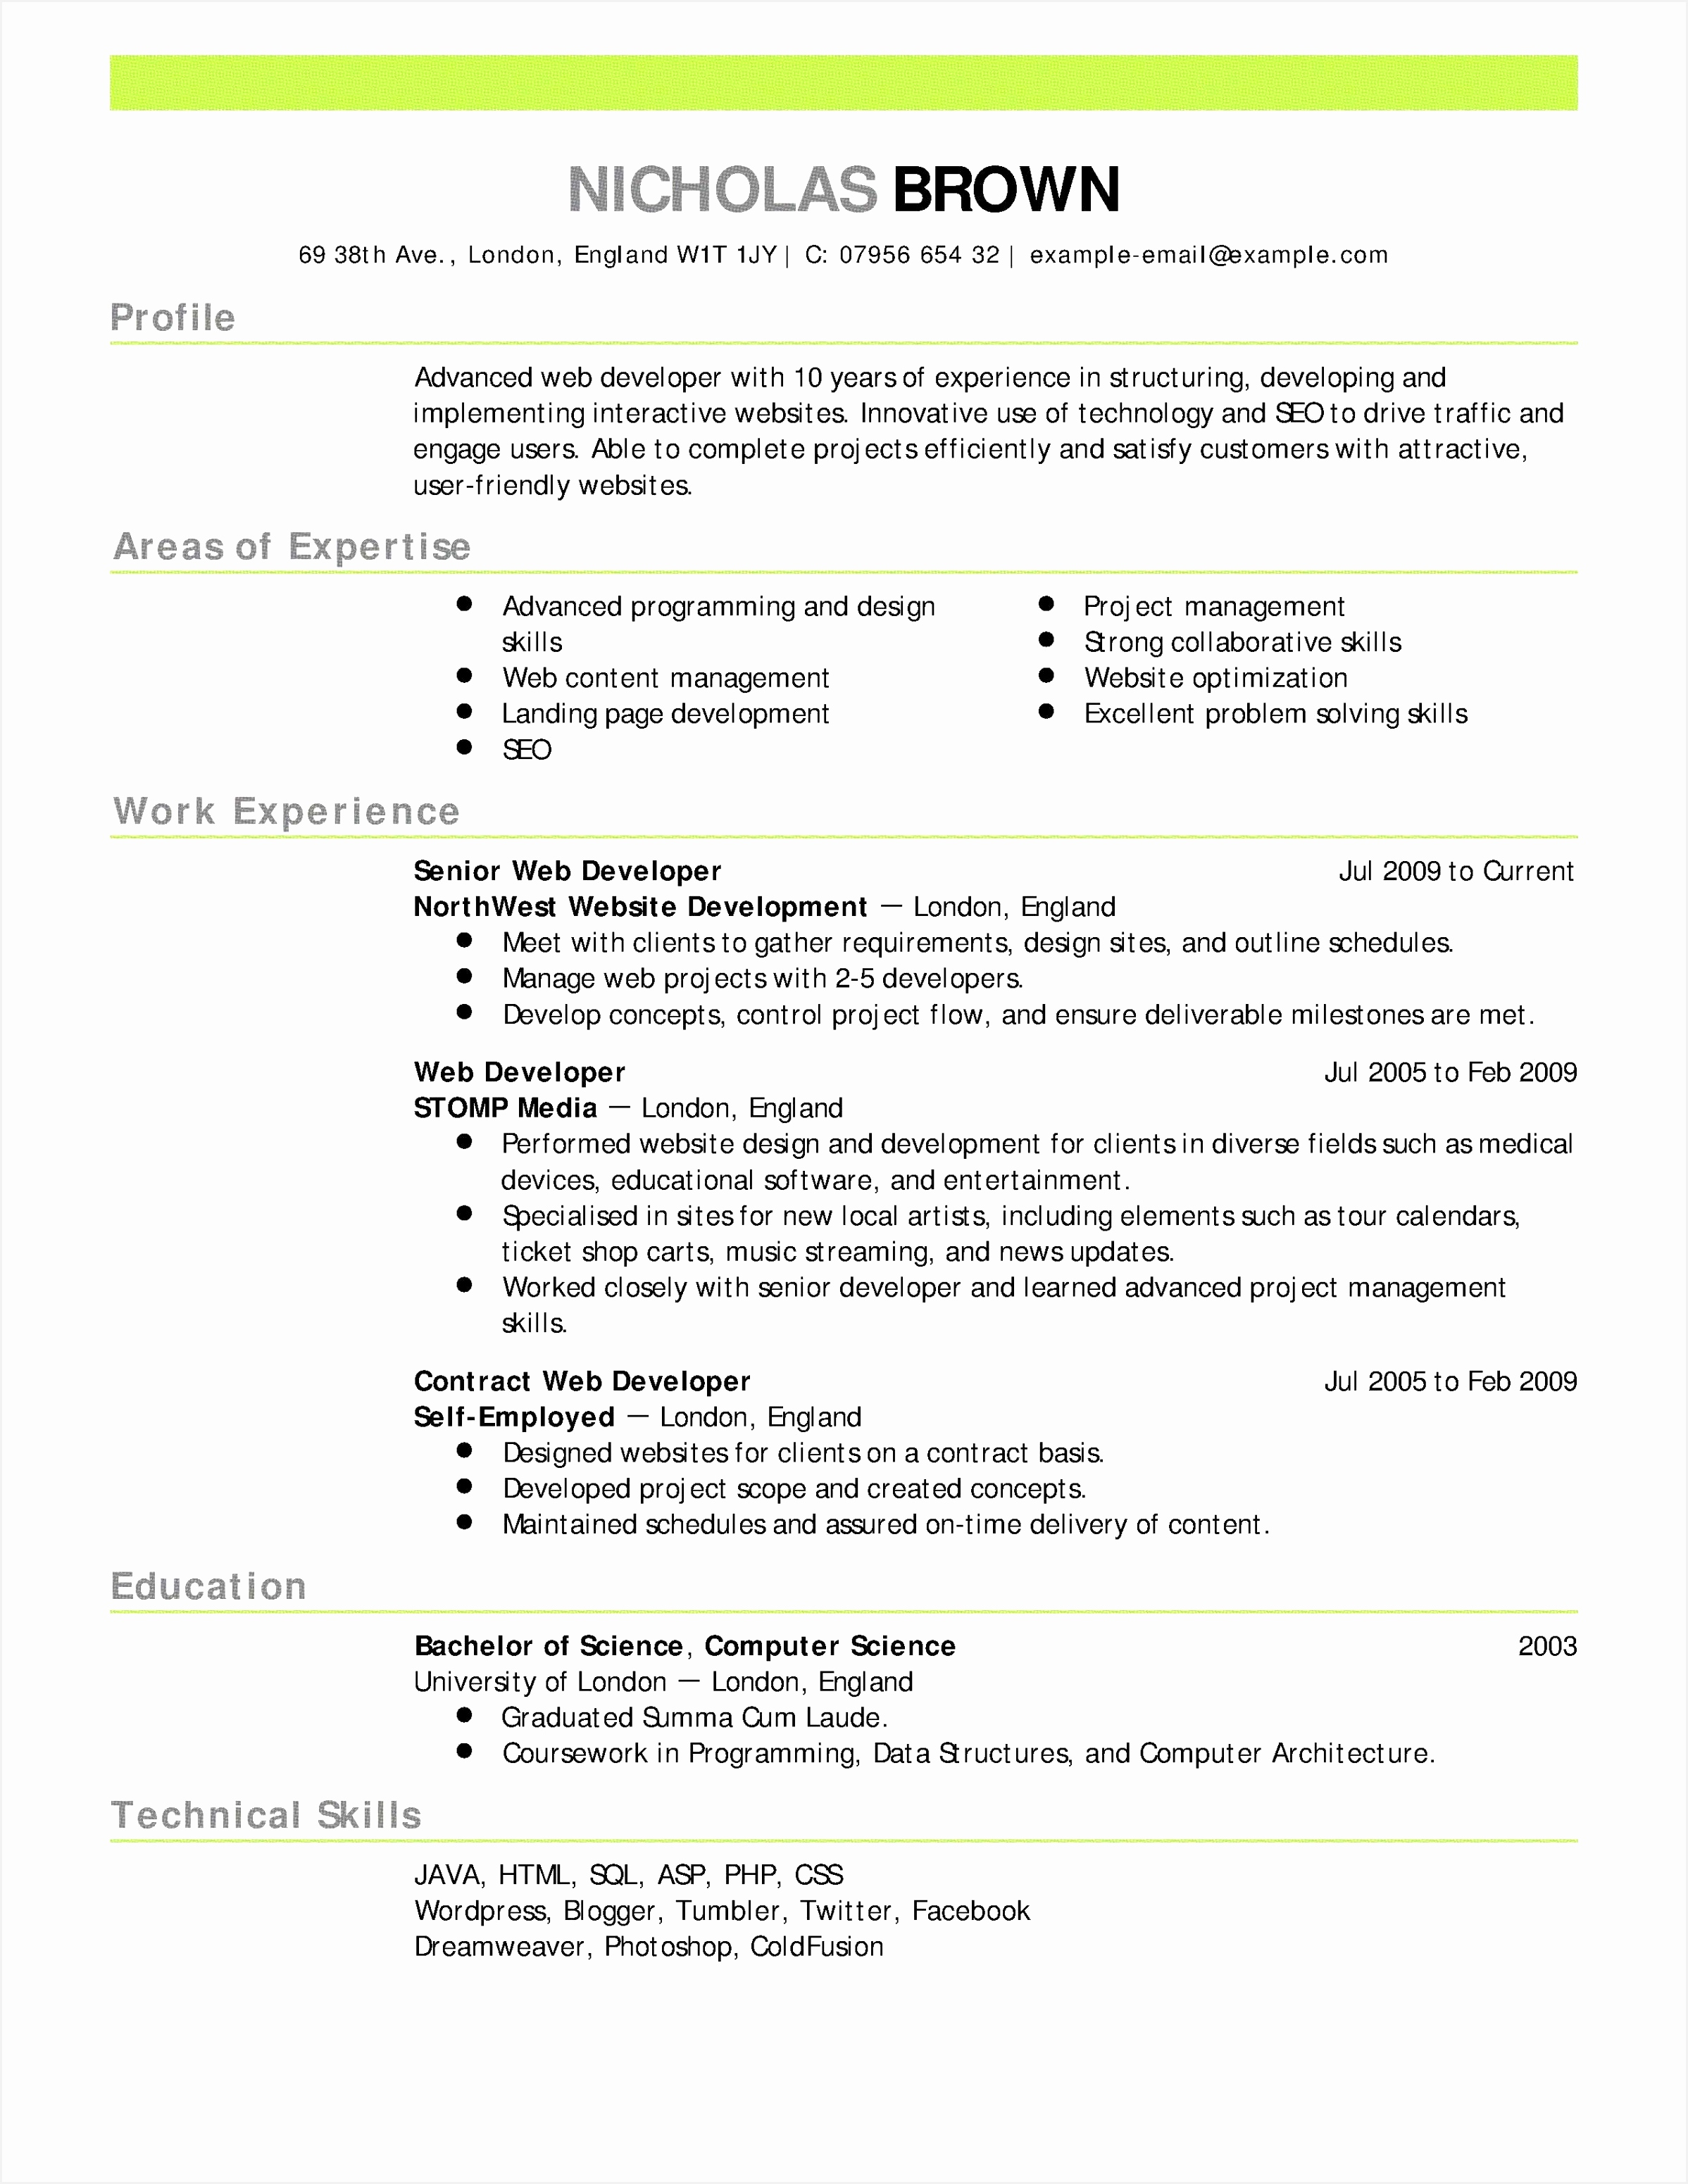 Word 2013 Resume Templates Fresh Invoice Word Template Unique Ivoice Template 0d Archives Free Resume Free 31022397blJYg